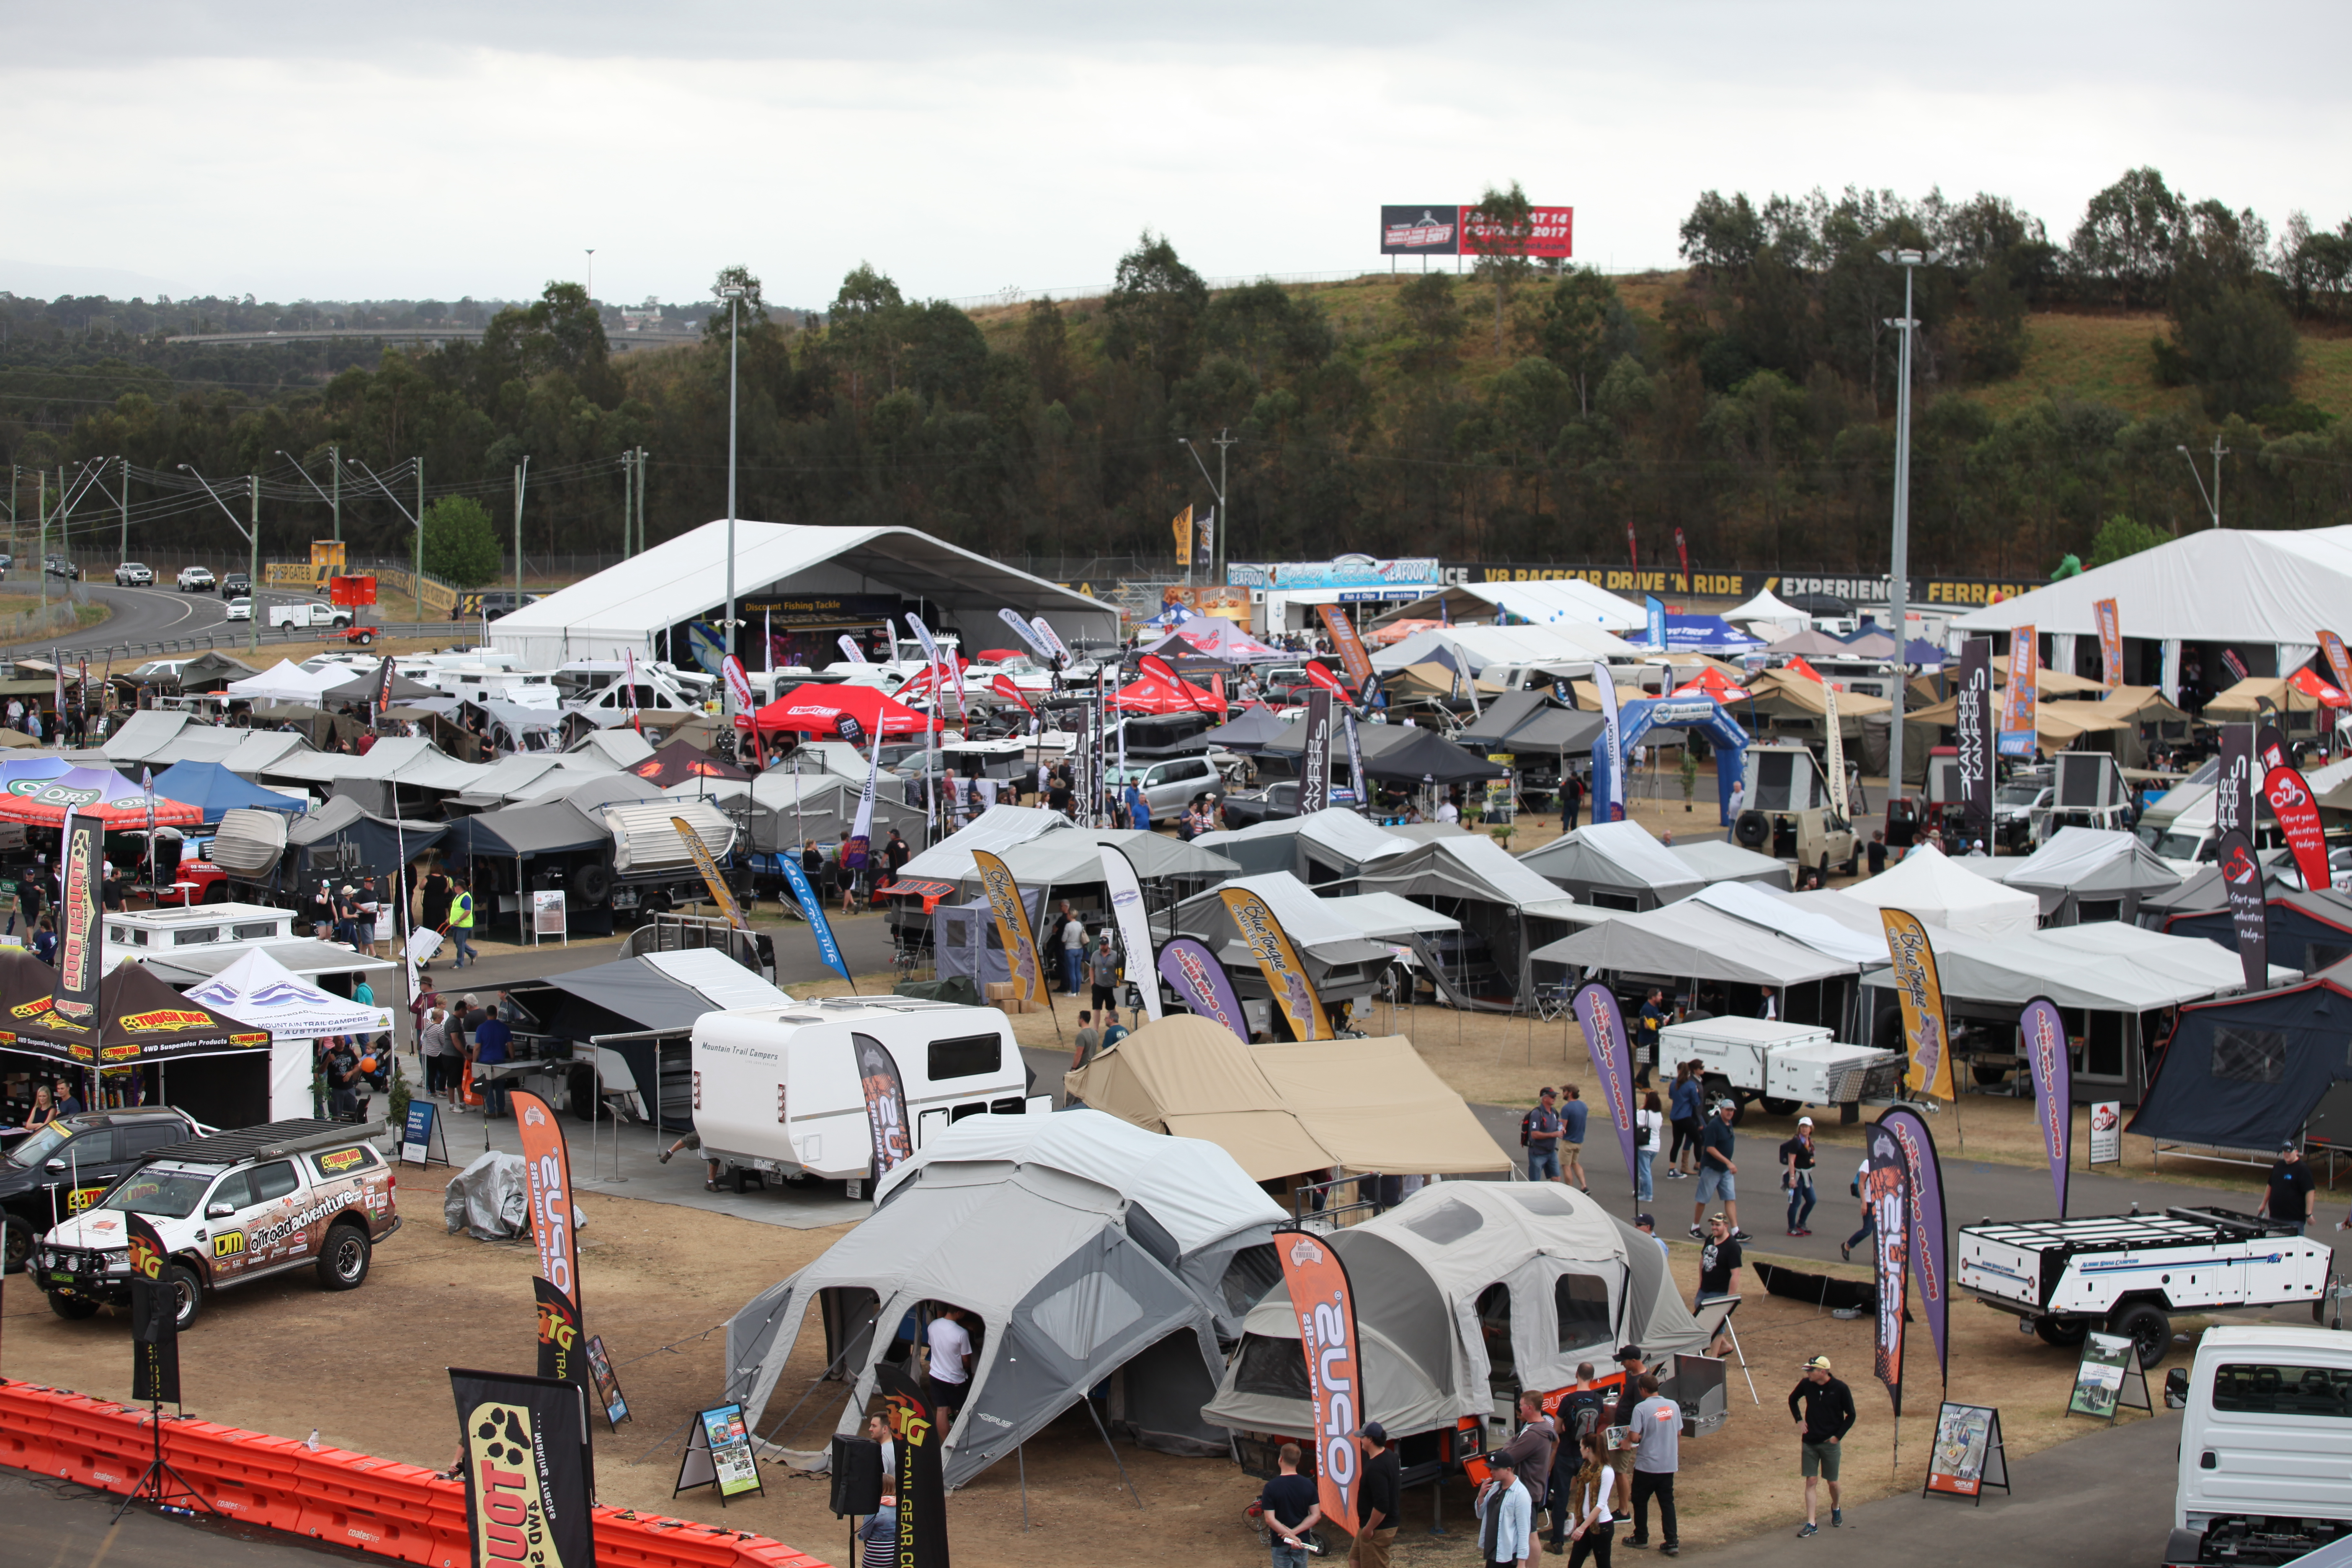 Sydney 4WD and Adventure show is next weekend!